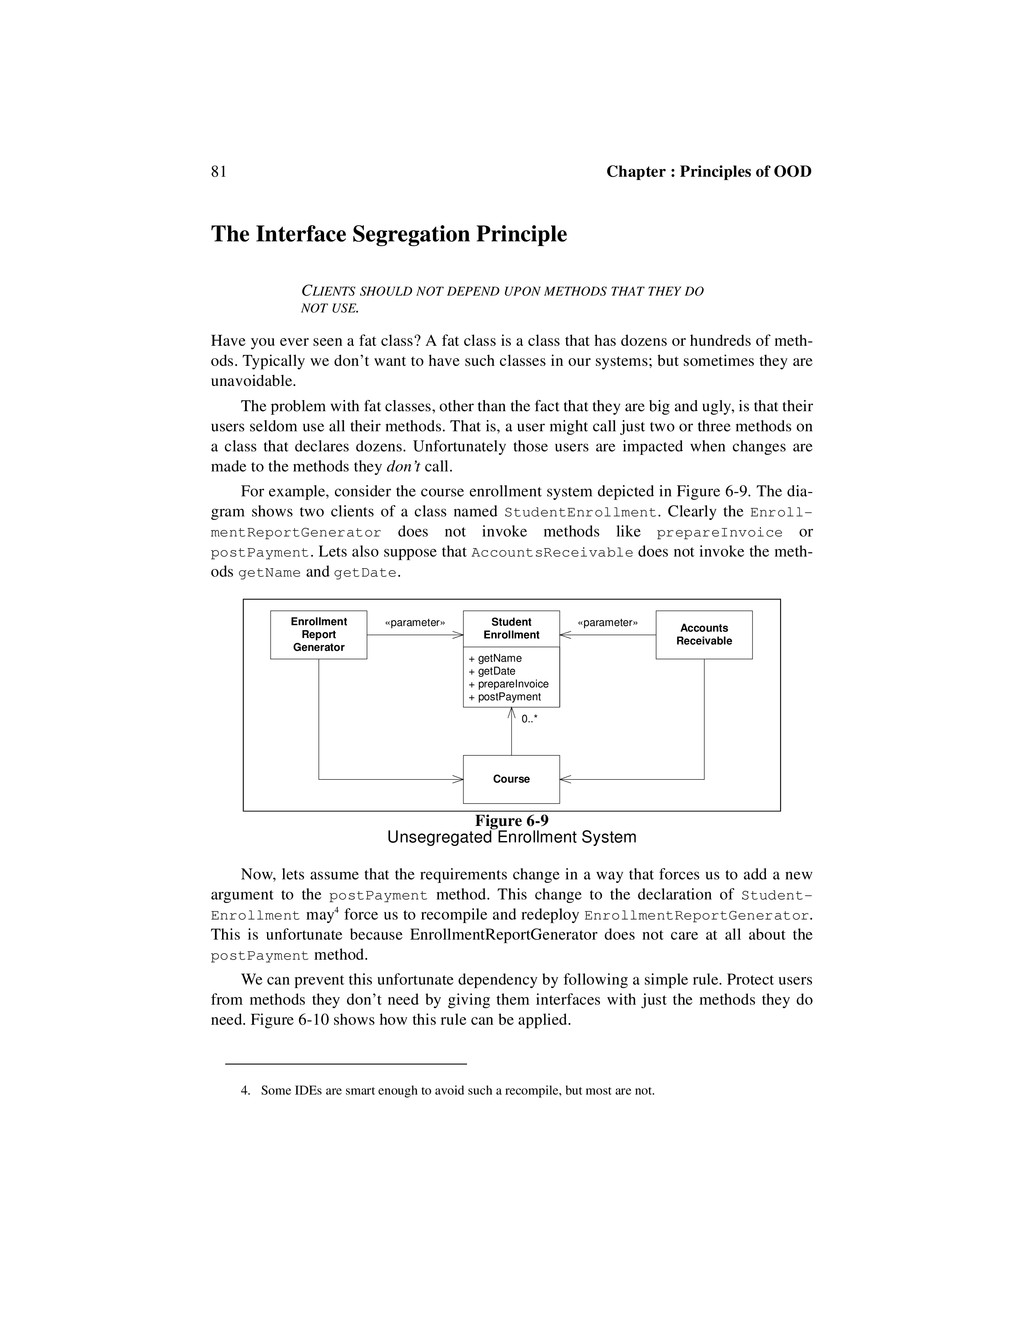 81 Chapter : Principles of OOD The Interface Se...